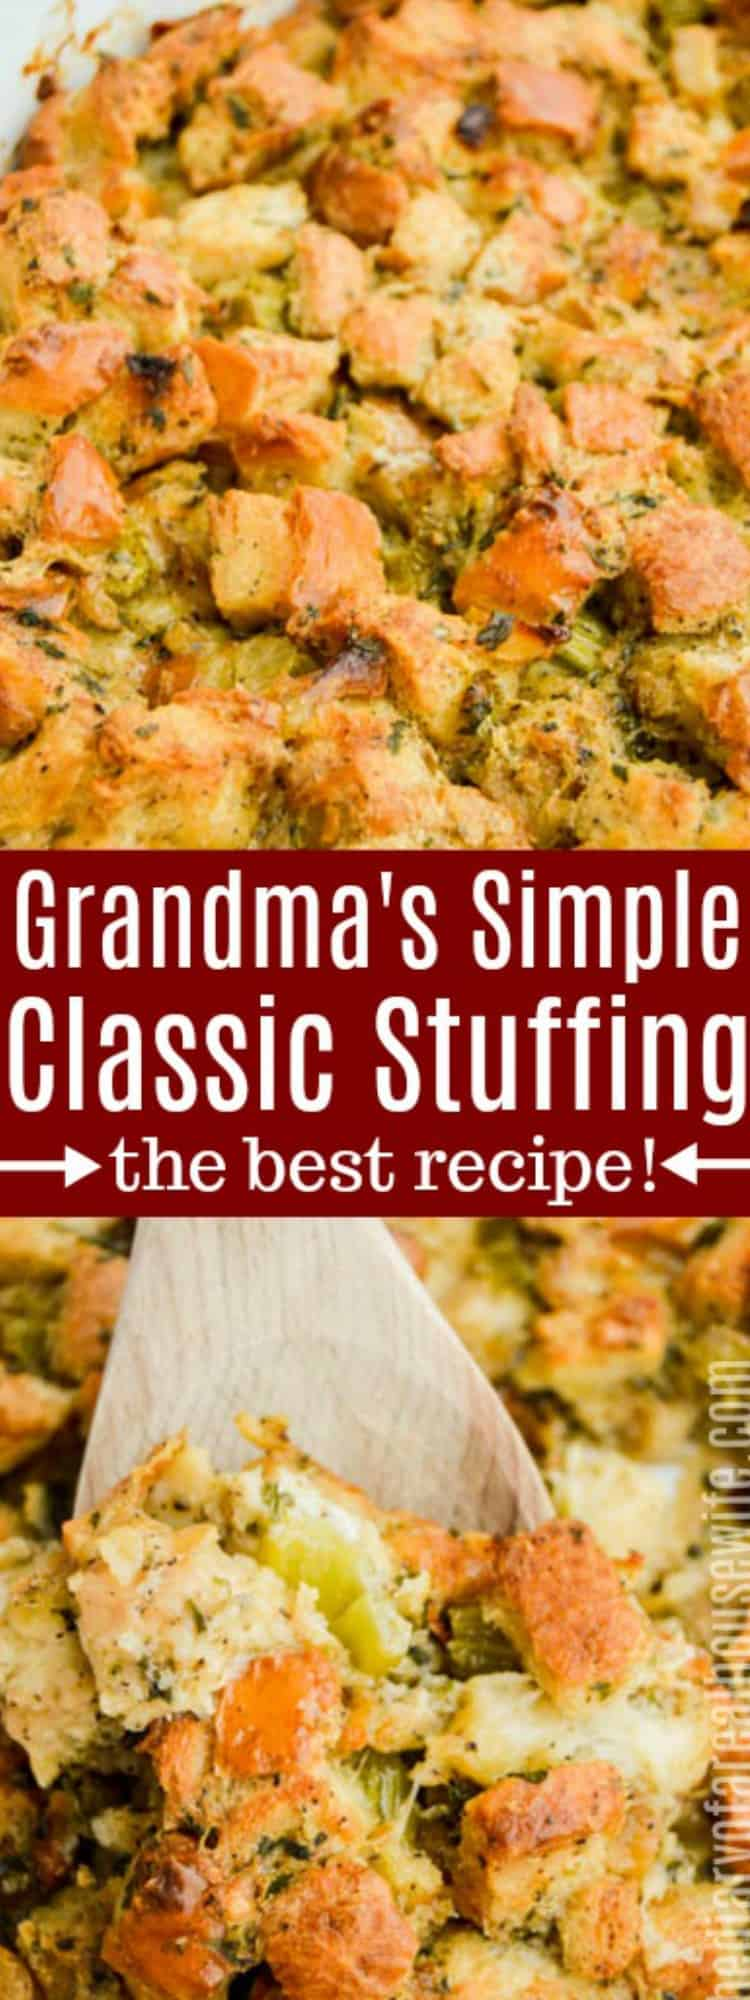 Simple Classic Stuffing